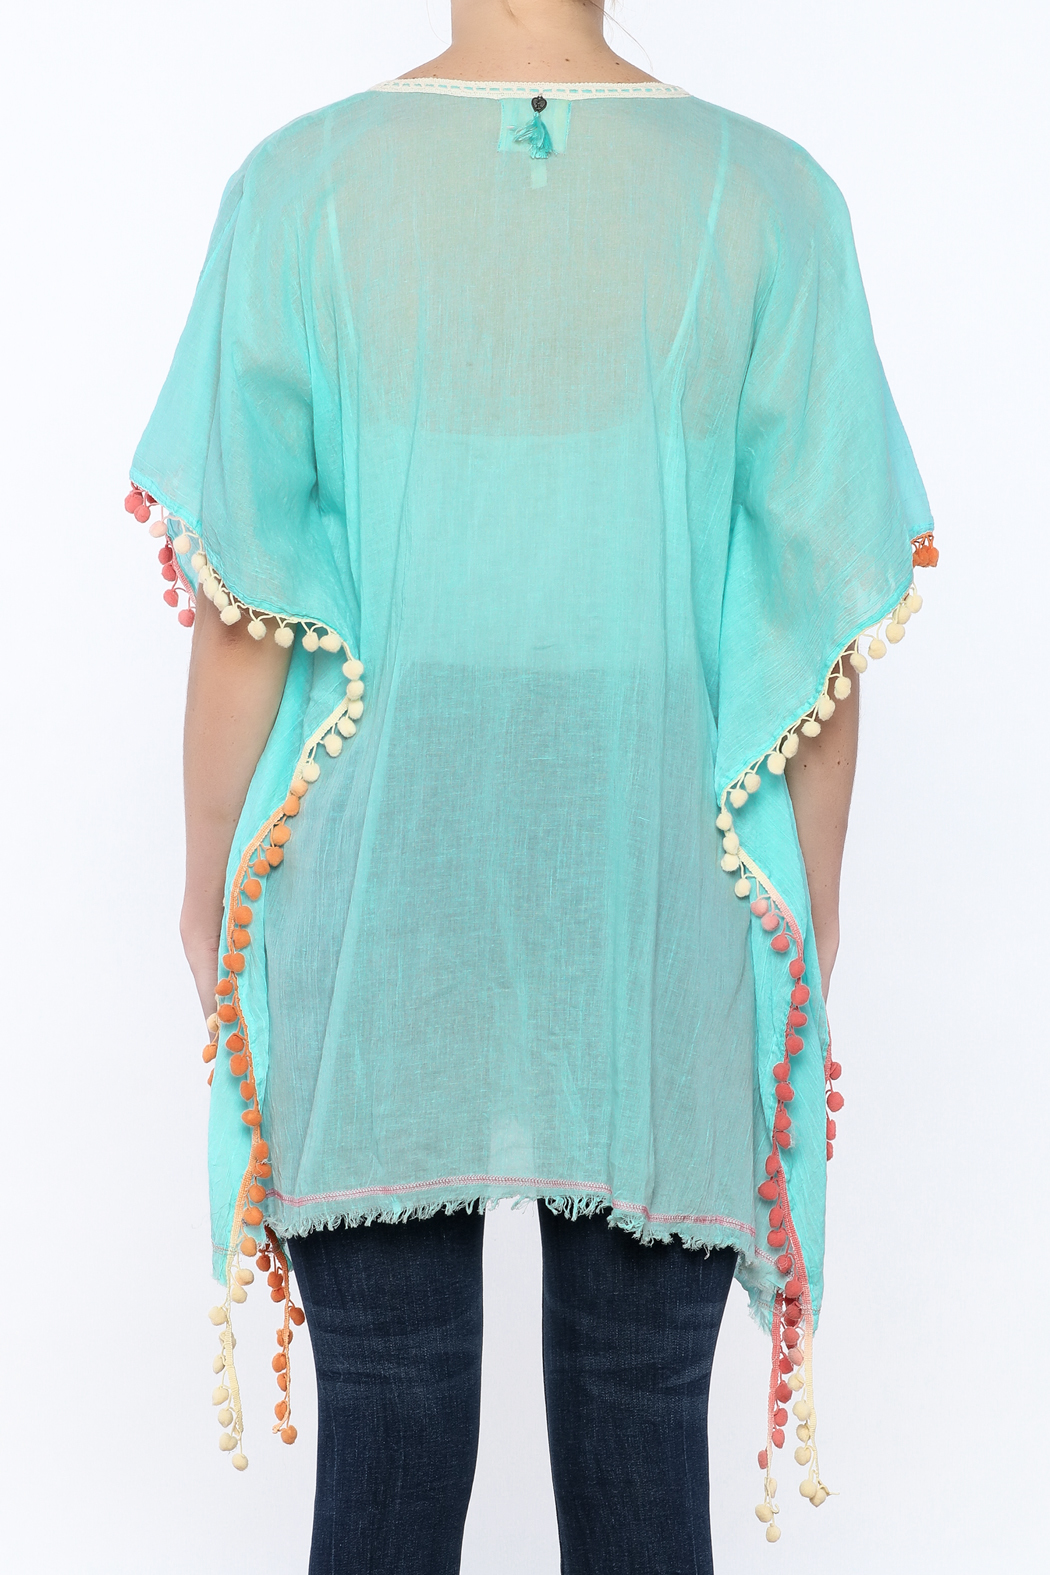 Z&L Europe Floral Pompom Tunic Top - Back Cropped Image